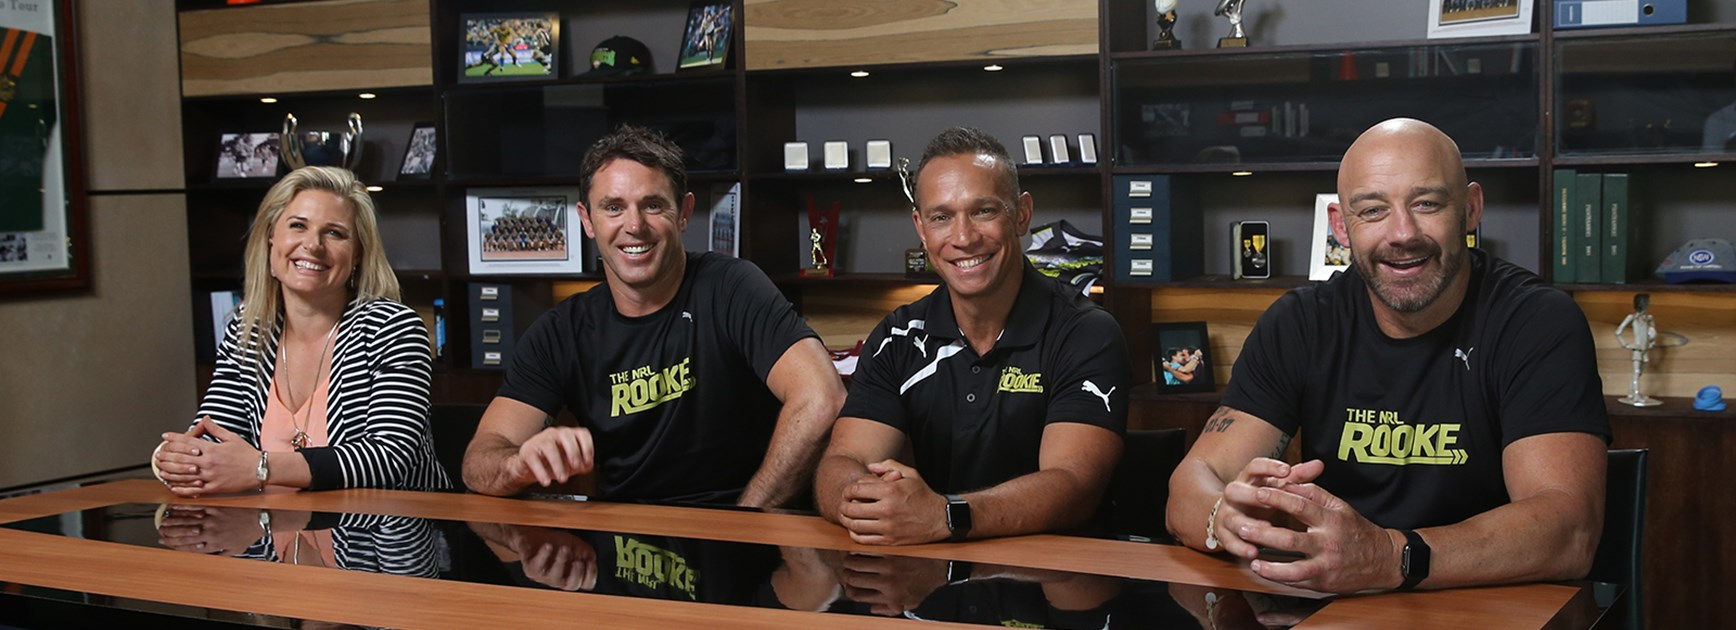 Kate Baecher, Brad Fittler, Adrian Lam and Mark Geyer in 'The War Room' on The NRL Rookie.